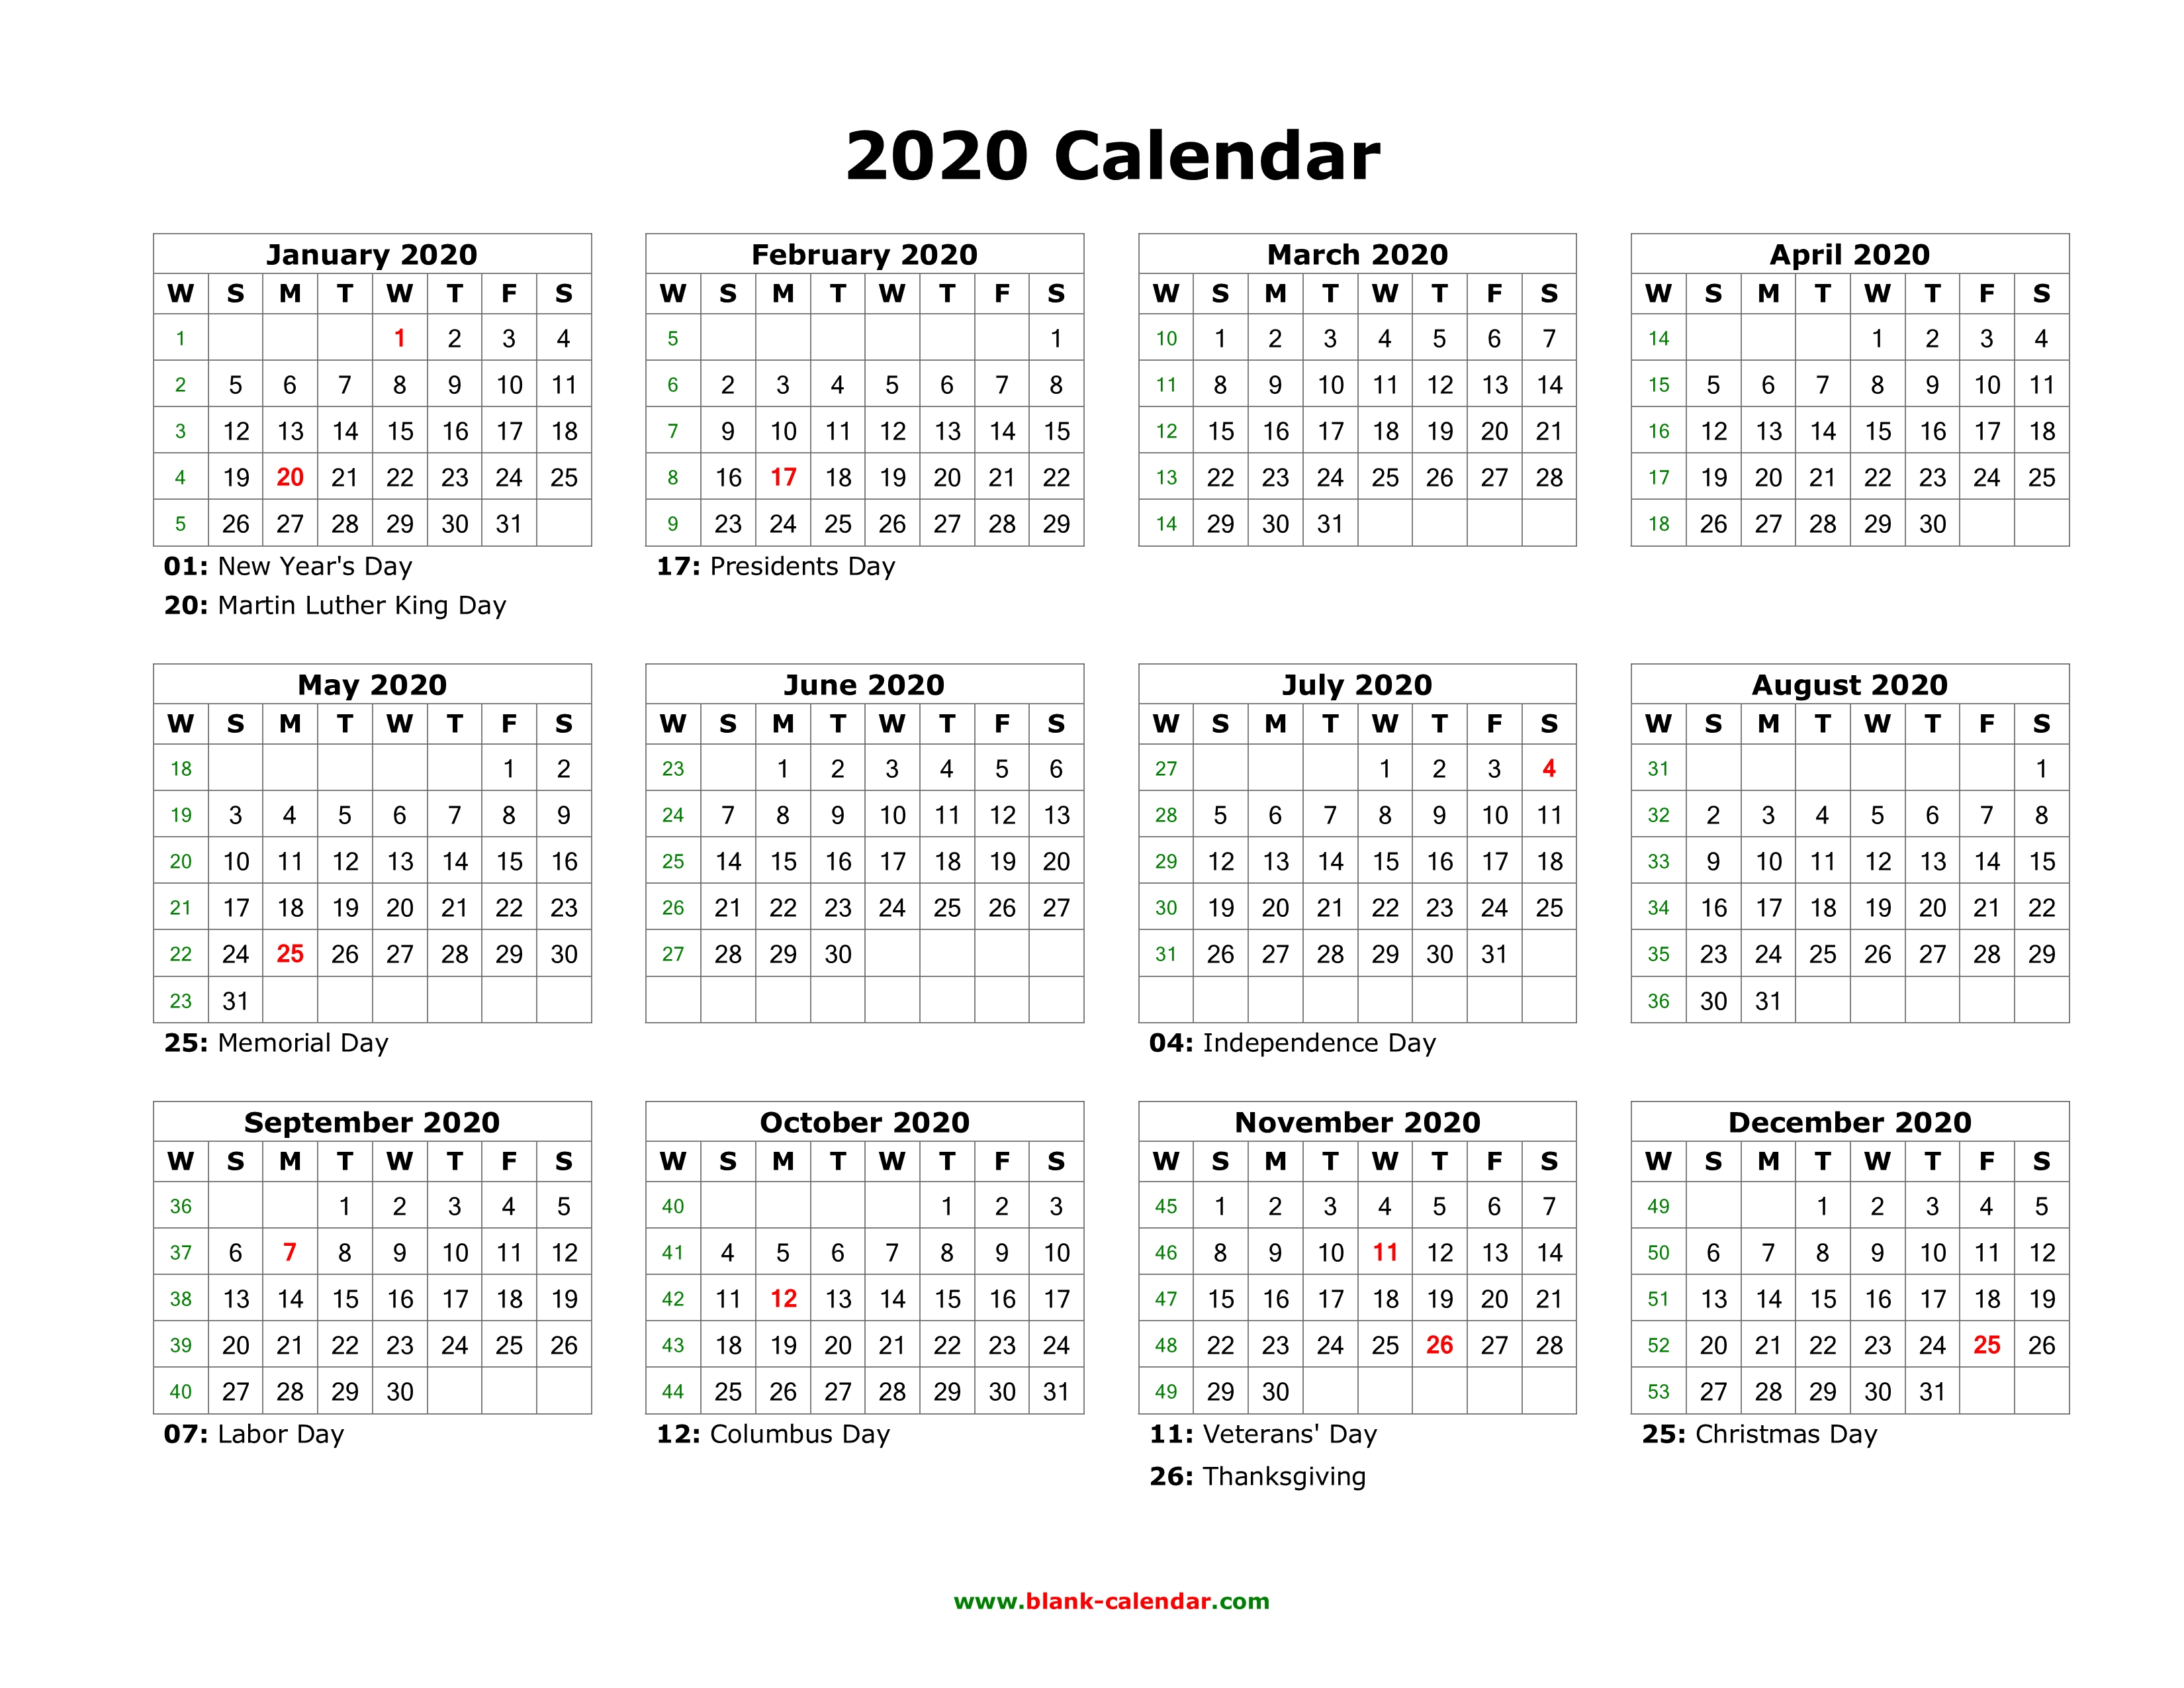 Blank Calendar 2020 | Free Download Calendar Templates pertaining to 2020 Calendars To Fill In